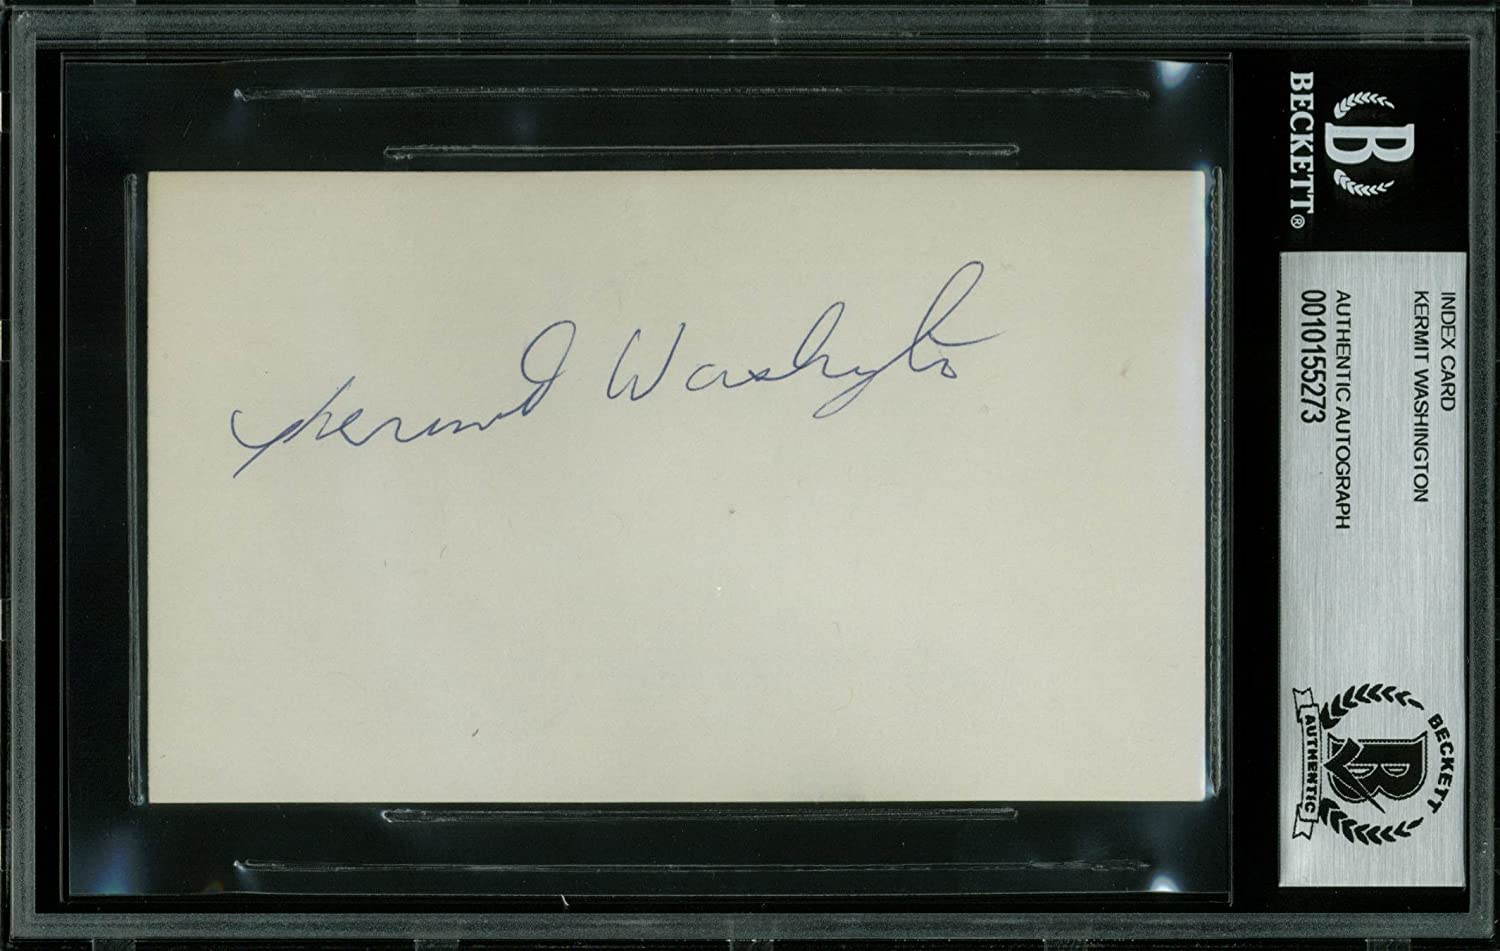 Lakers Kermit Washington Authentic Signed 3x5 Index Card